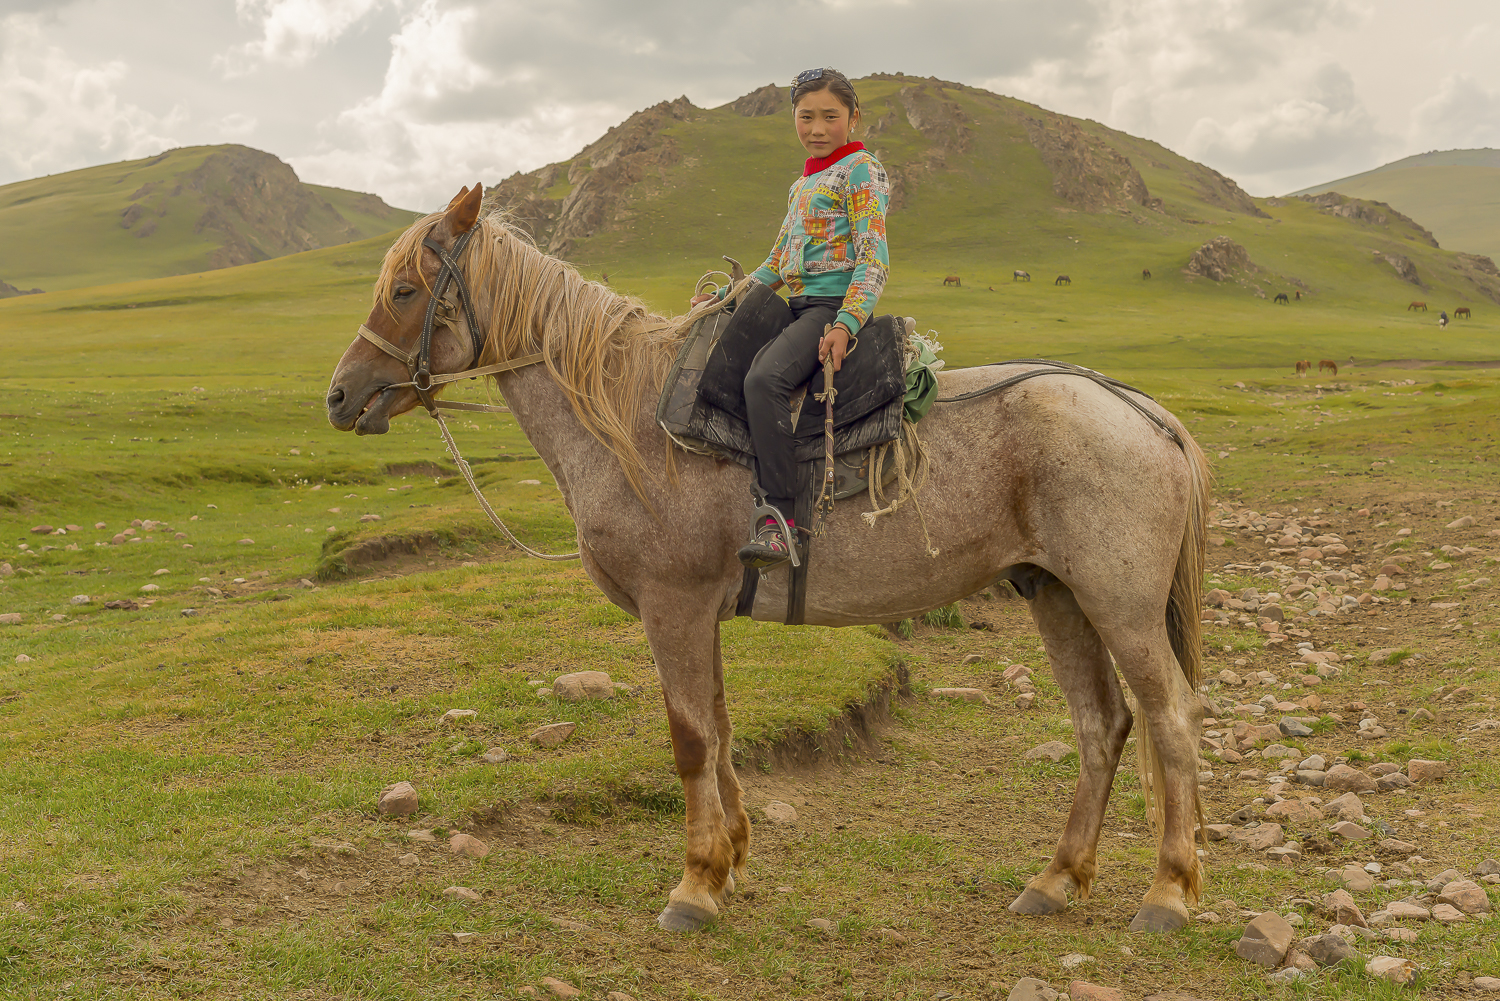 jo-kearney-photography-video-kyrgyzstan-nomads-girl-horse.jpg